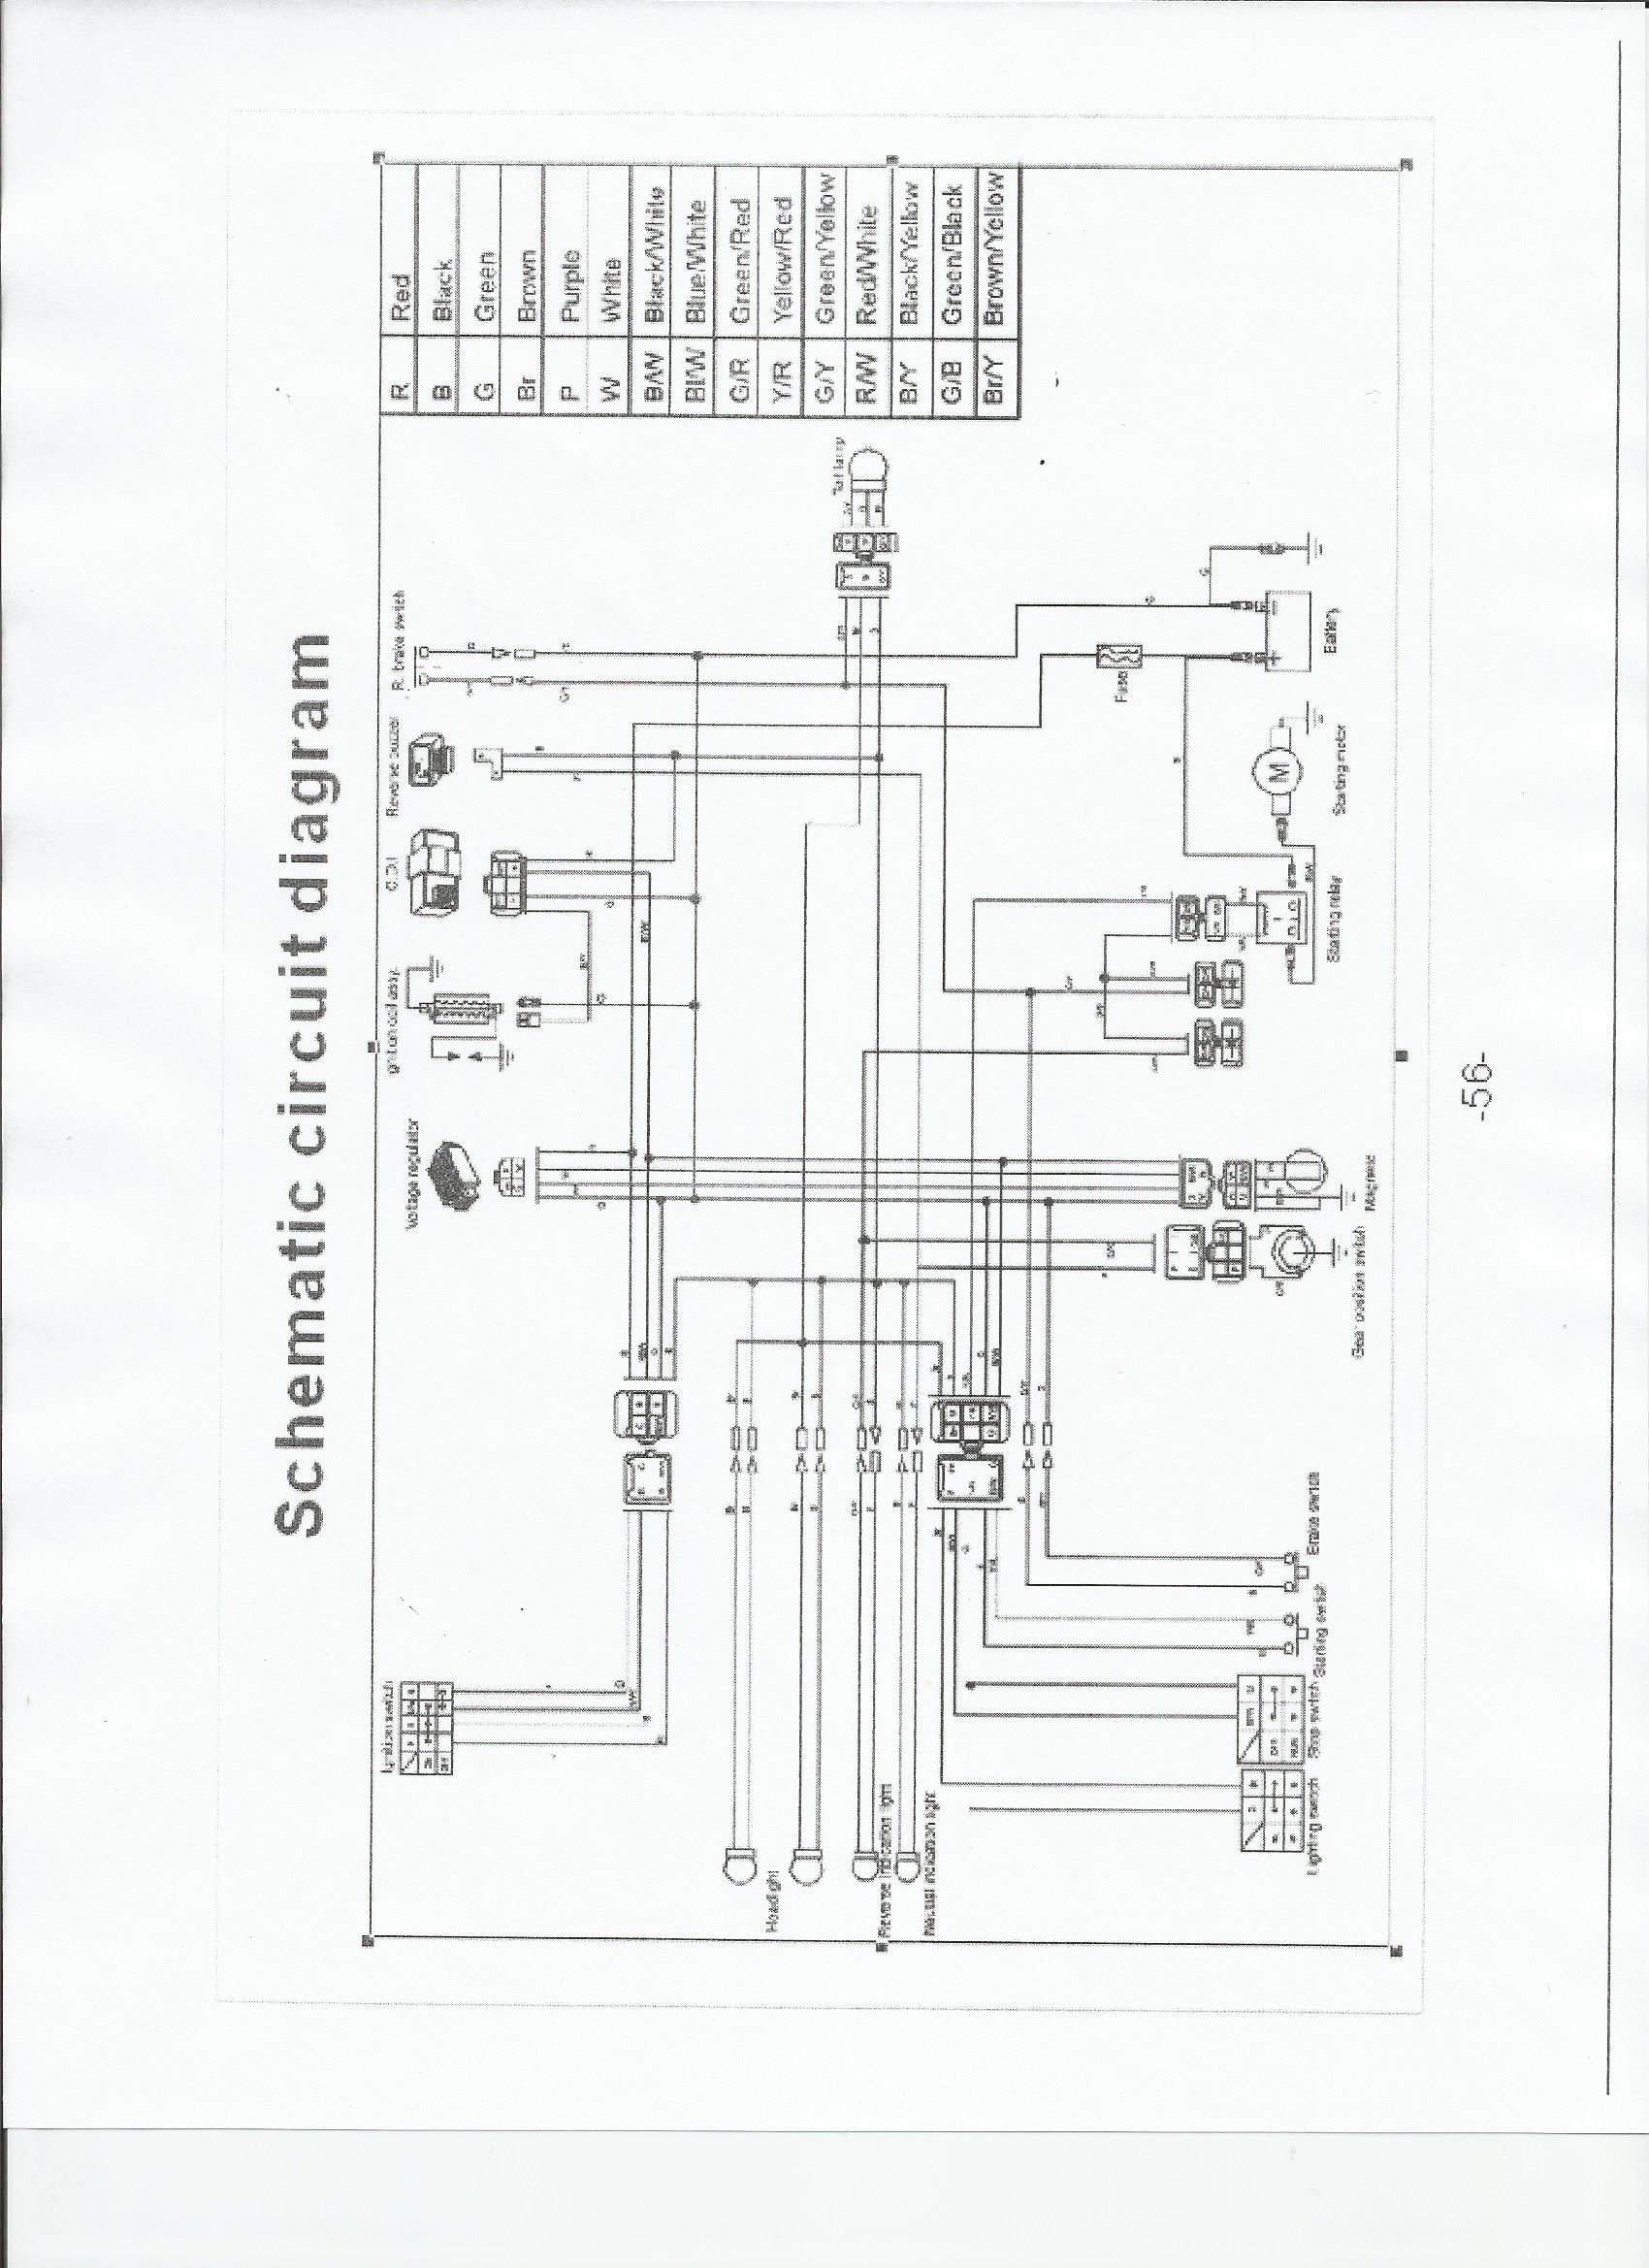 tao tao wiring schematic tao tao ata150 wiring schematic,tao \u2022 indy500 co  at nearapp.co